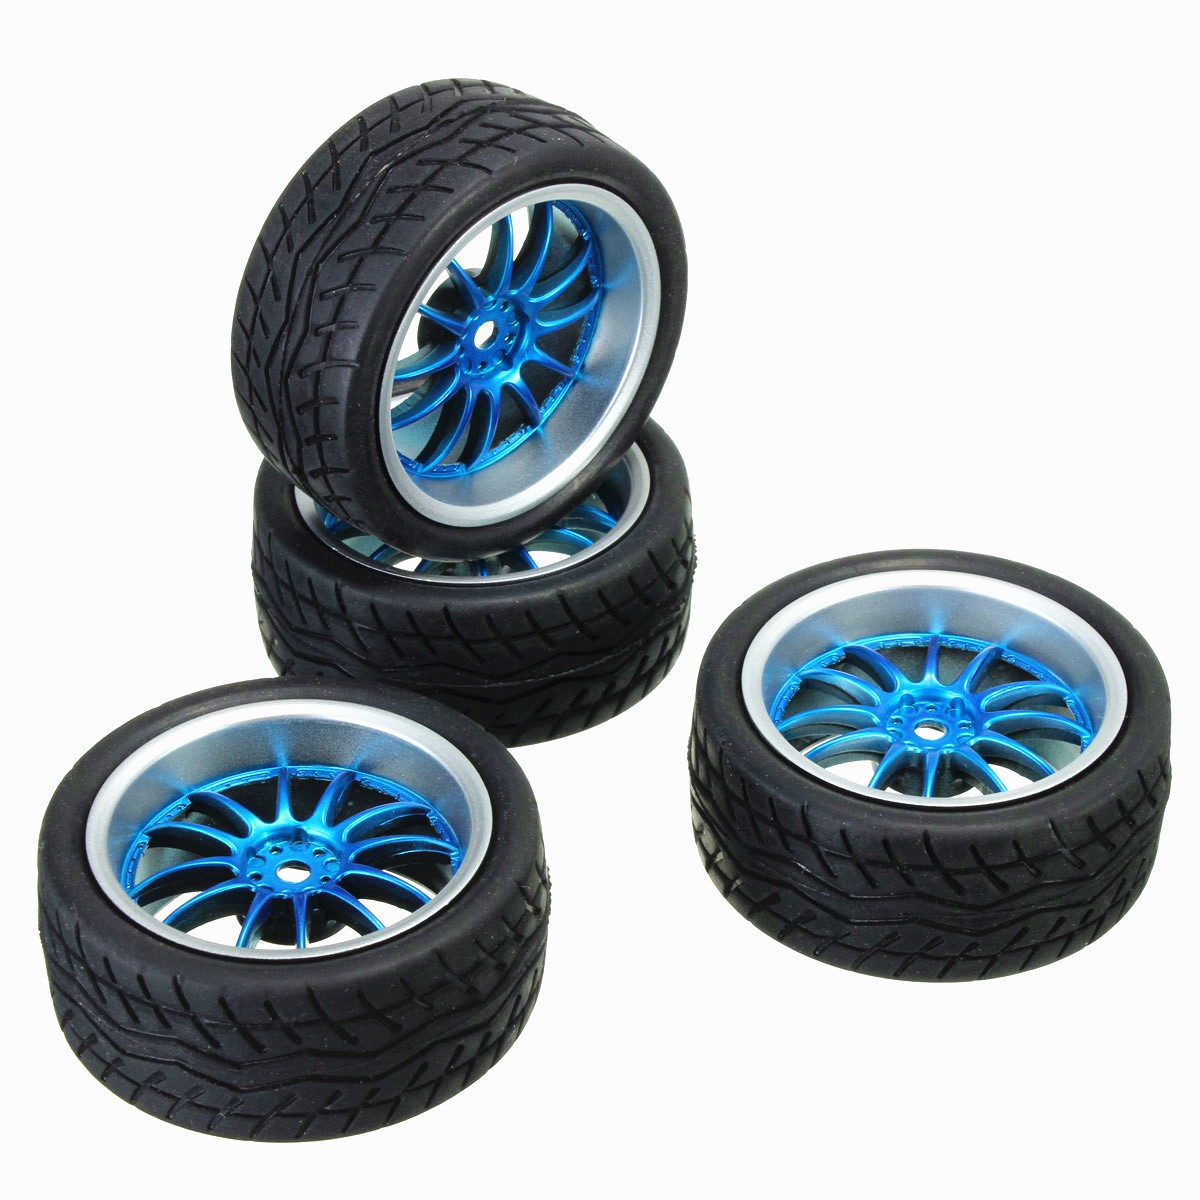 4Pcs Rubber RC Flat Racing Car Tires On Road Wheel 12-spoke Wheel Rim For Robots, Intelligent Cars, Model Cars, RC Car cml rc 1 10 soft rubber racing grip tires model for on road flat run car 4 pcs